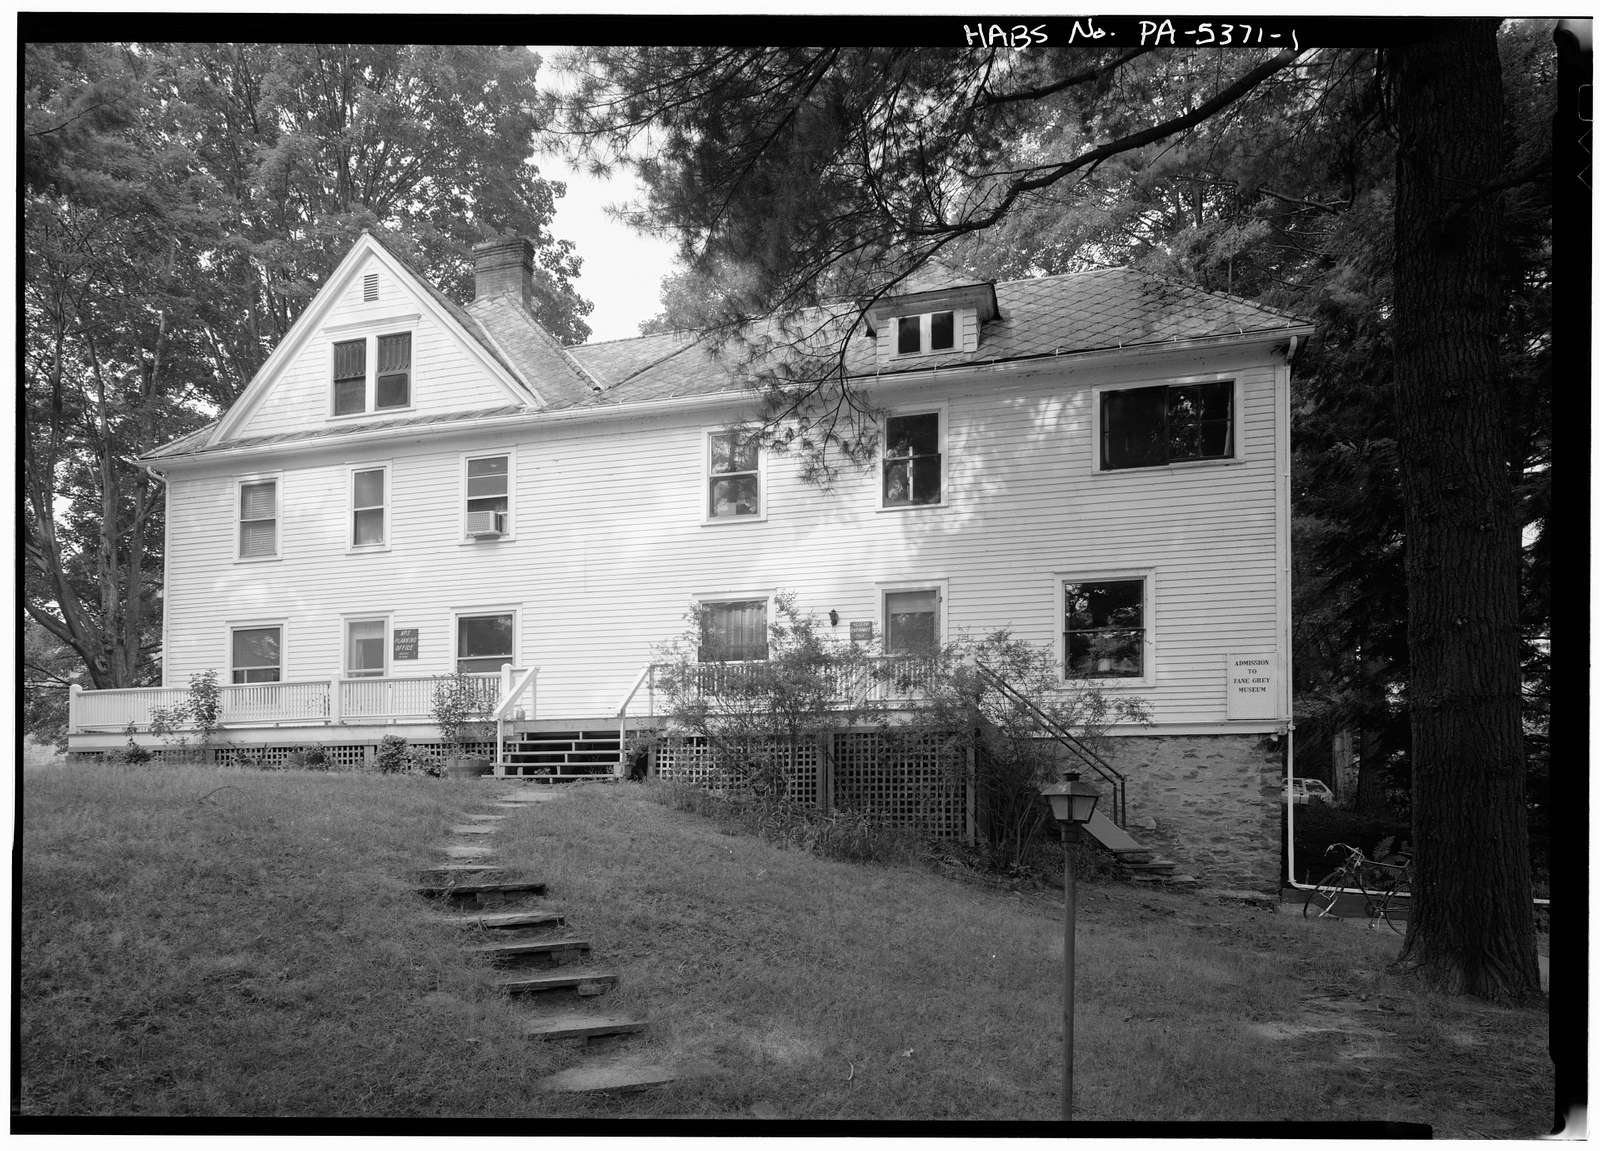 Zane Grey House, West side of Scenic Drive, Lackawaxen, Pike County, PA